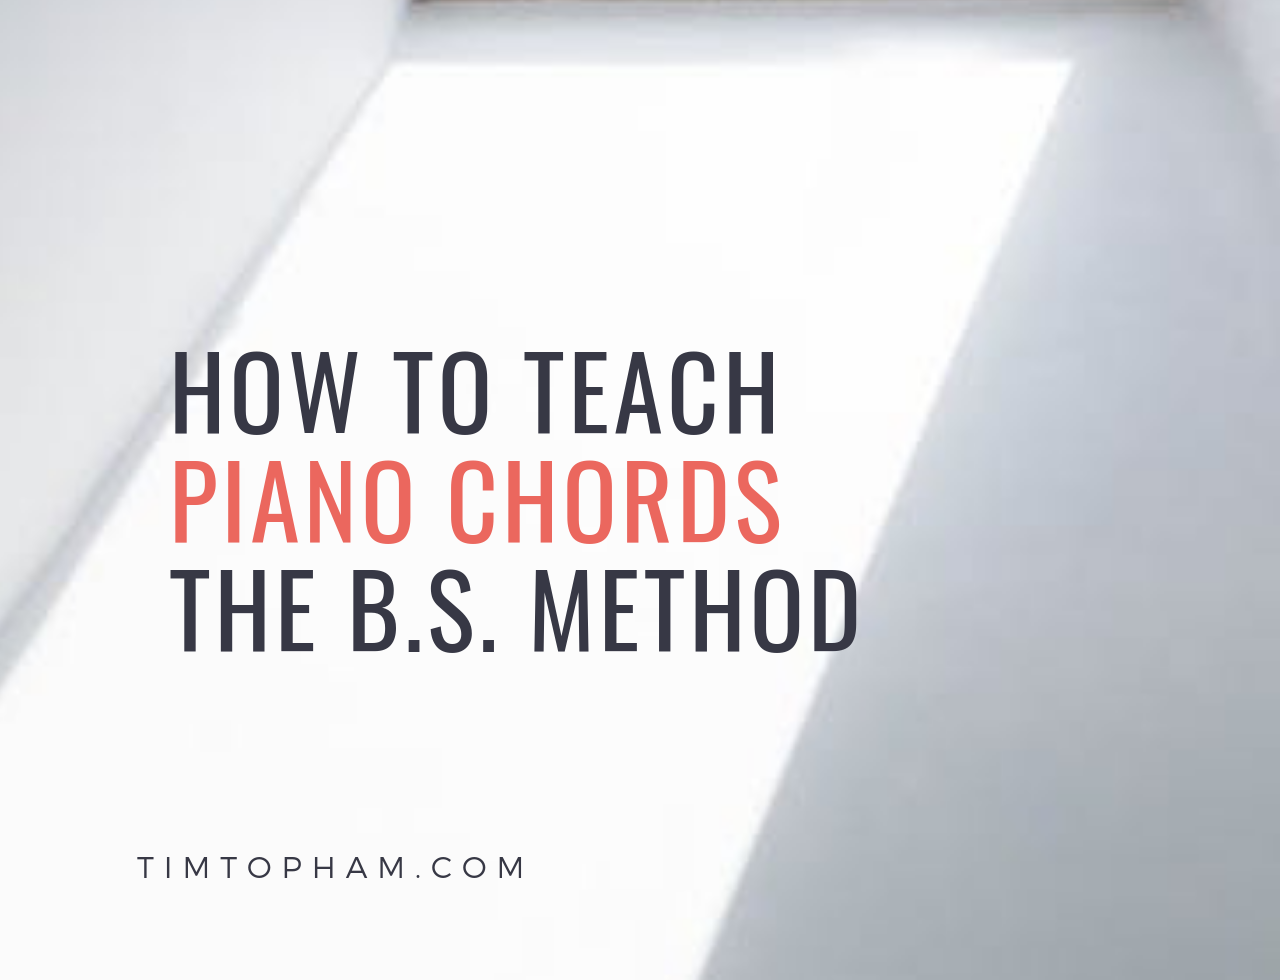 teach piano chords